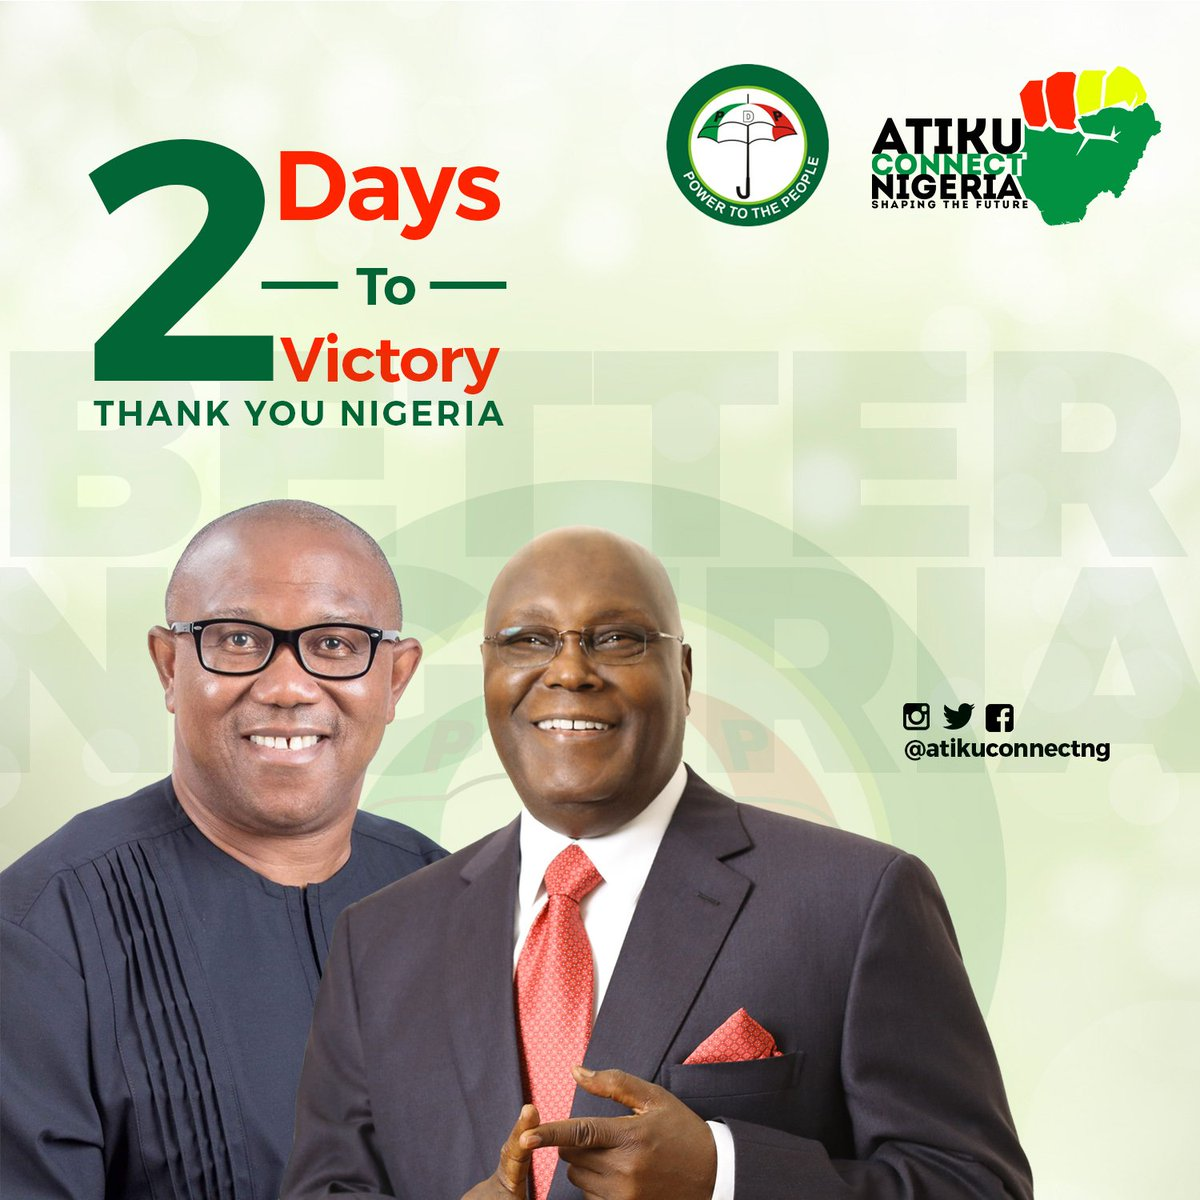 Its 2days to your victory #AtikuMyVal  @atiku Congratulations already!!! Together we would get Nigeria Working Again #BetterNigeria #ThursdayThoughts #NigeriaDecides2019 #AtikuConnect #AtikuObi<br>http://pic.twitter.com/X0LevnXLuV